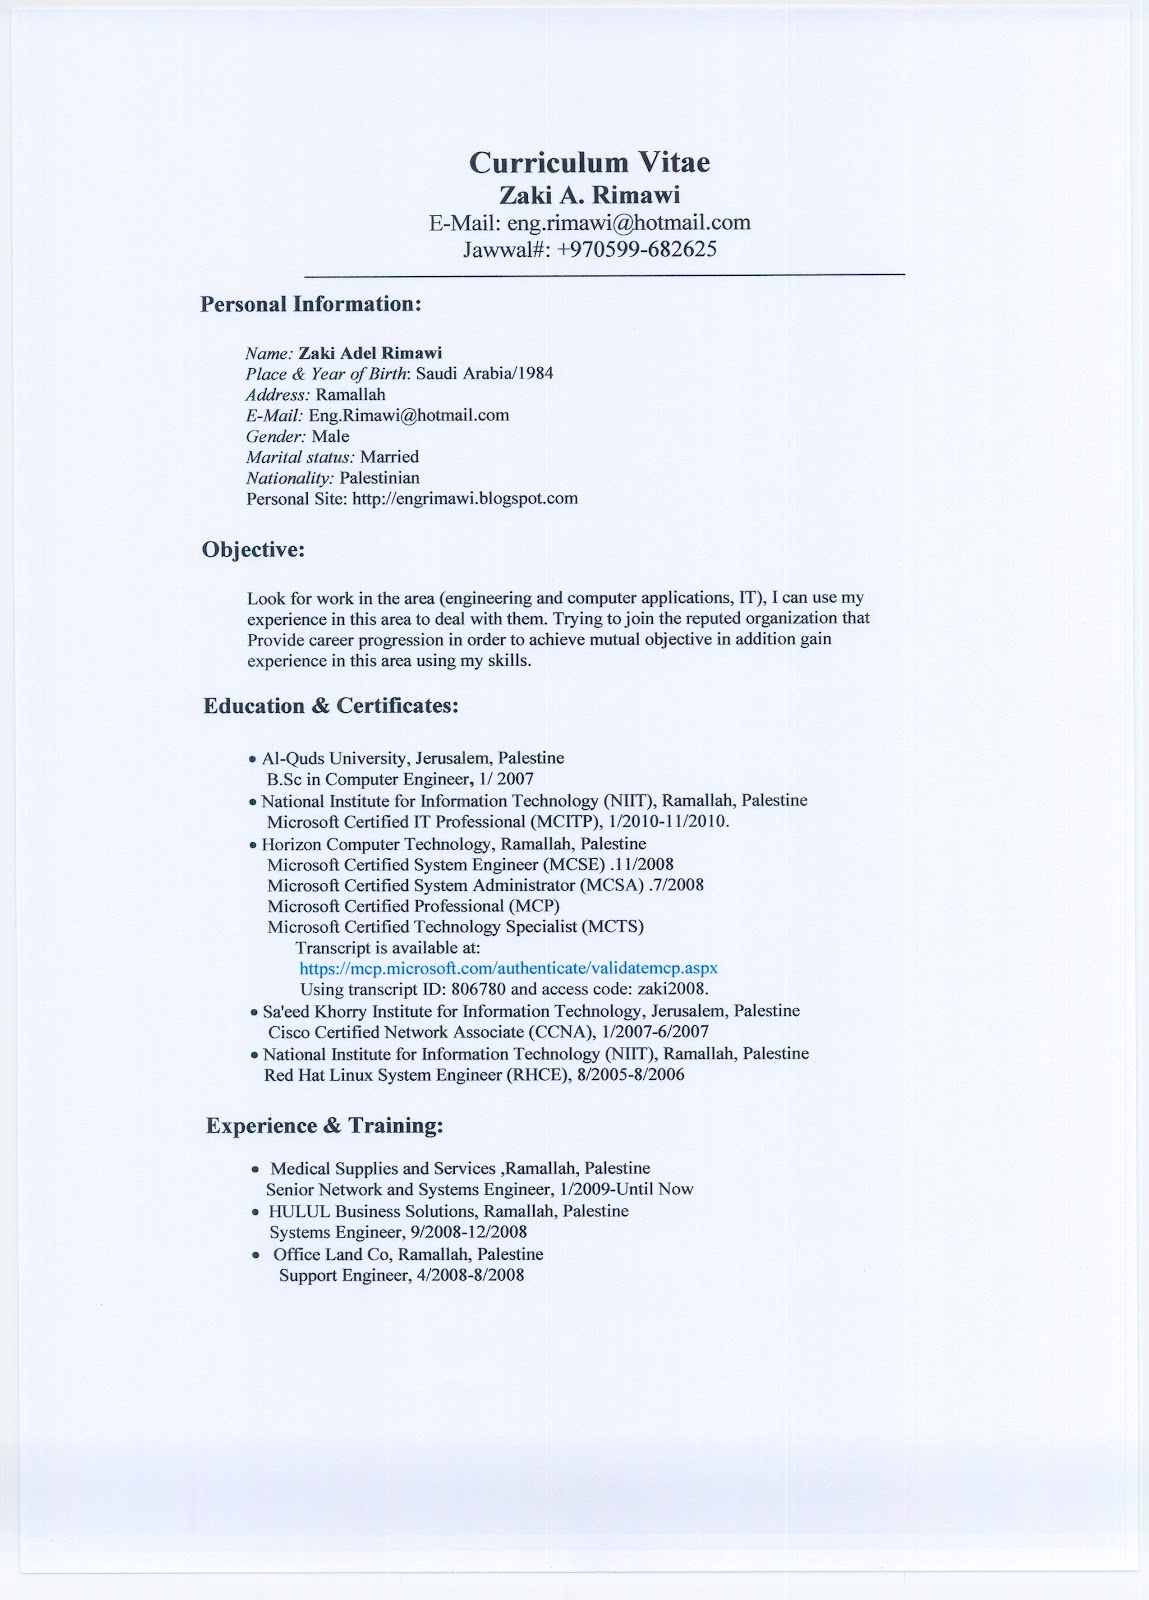 Resume Help Hobbies And Interests Examples Of Interests And